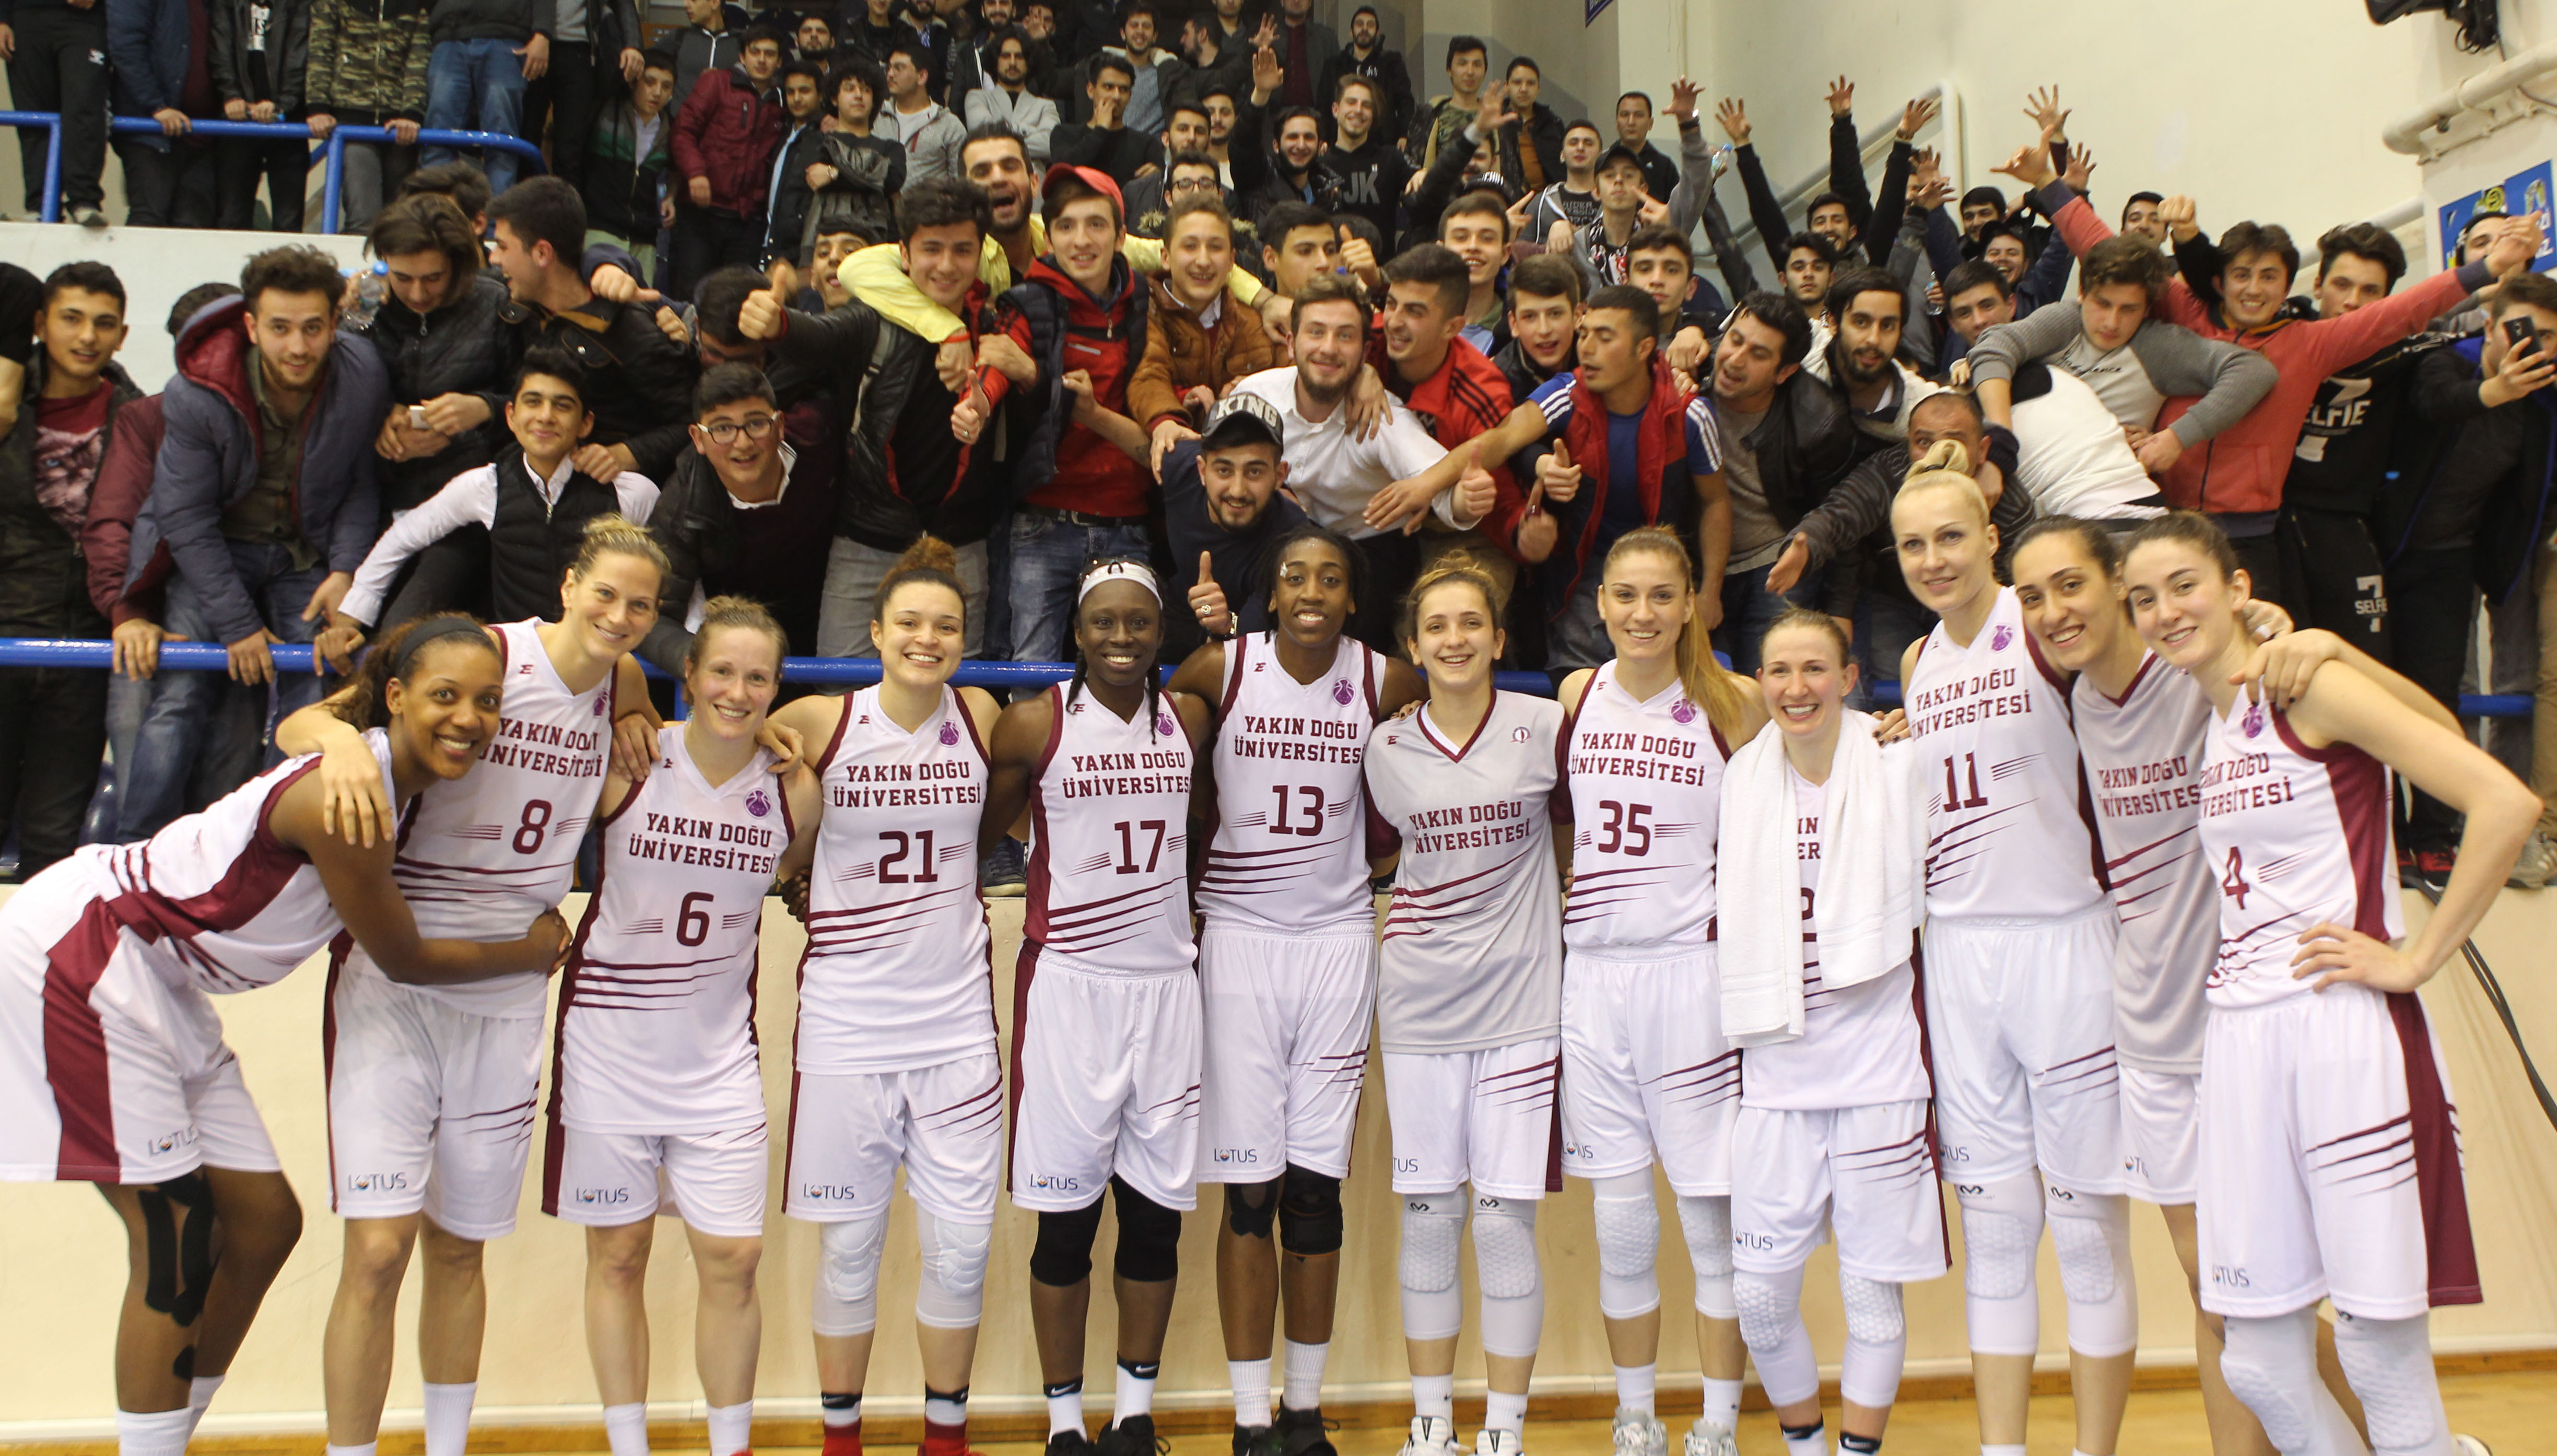 Step by step to cup in Europe … Near East University: 73 – Esbva-Lille: 61